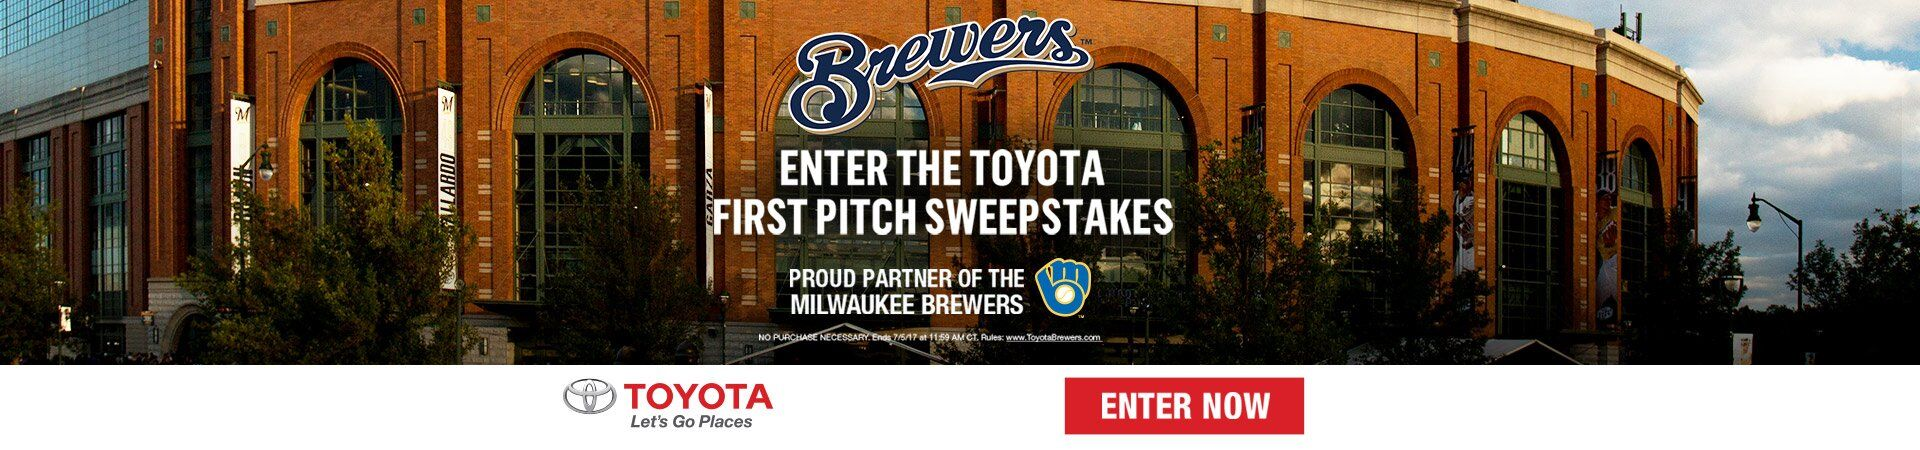 Your Chance To Throw The First Pitch At A Brewers Game